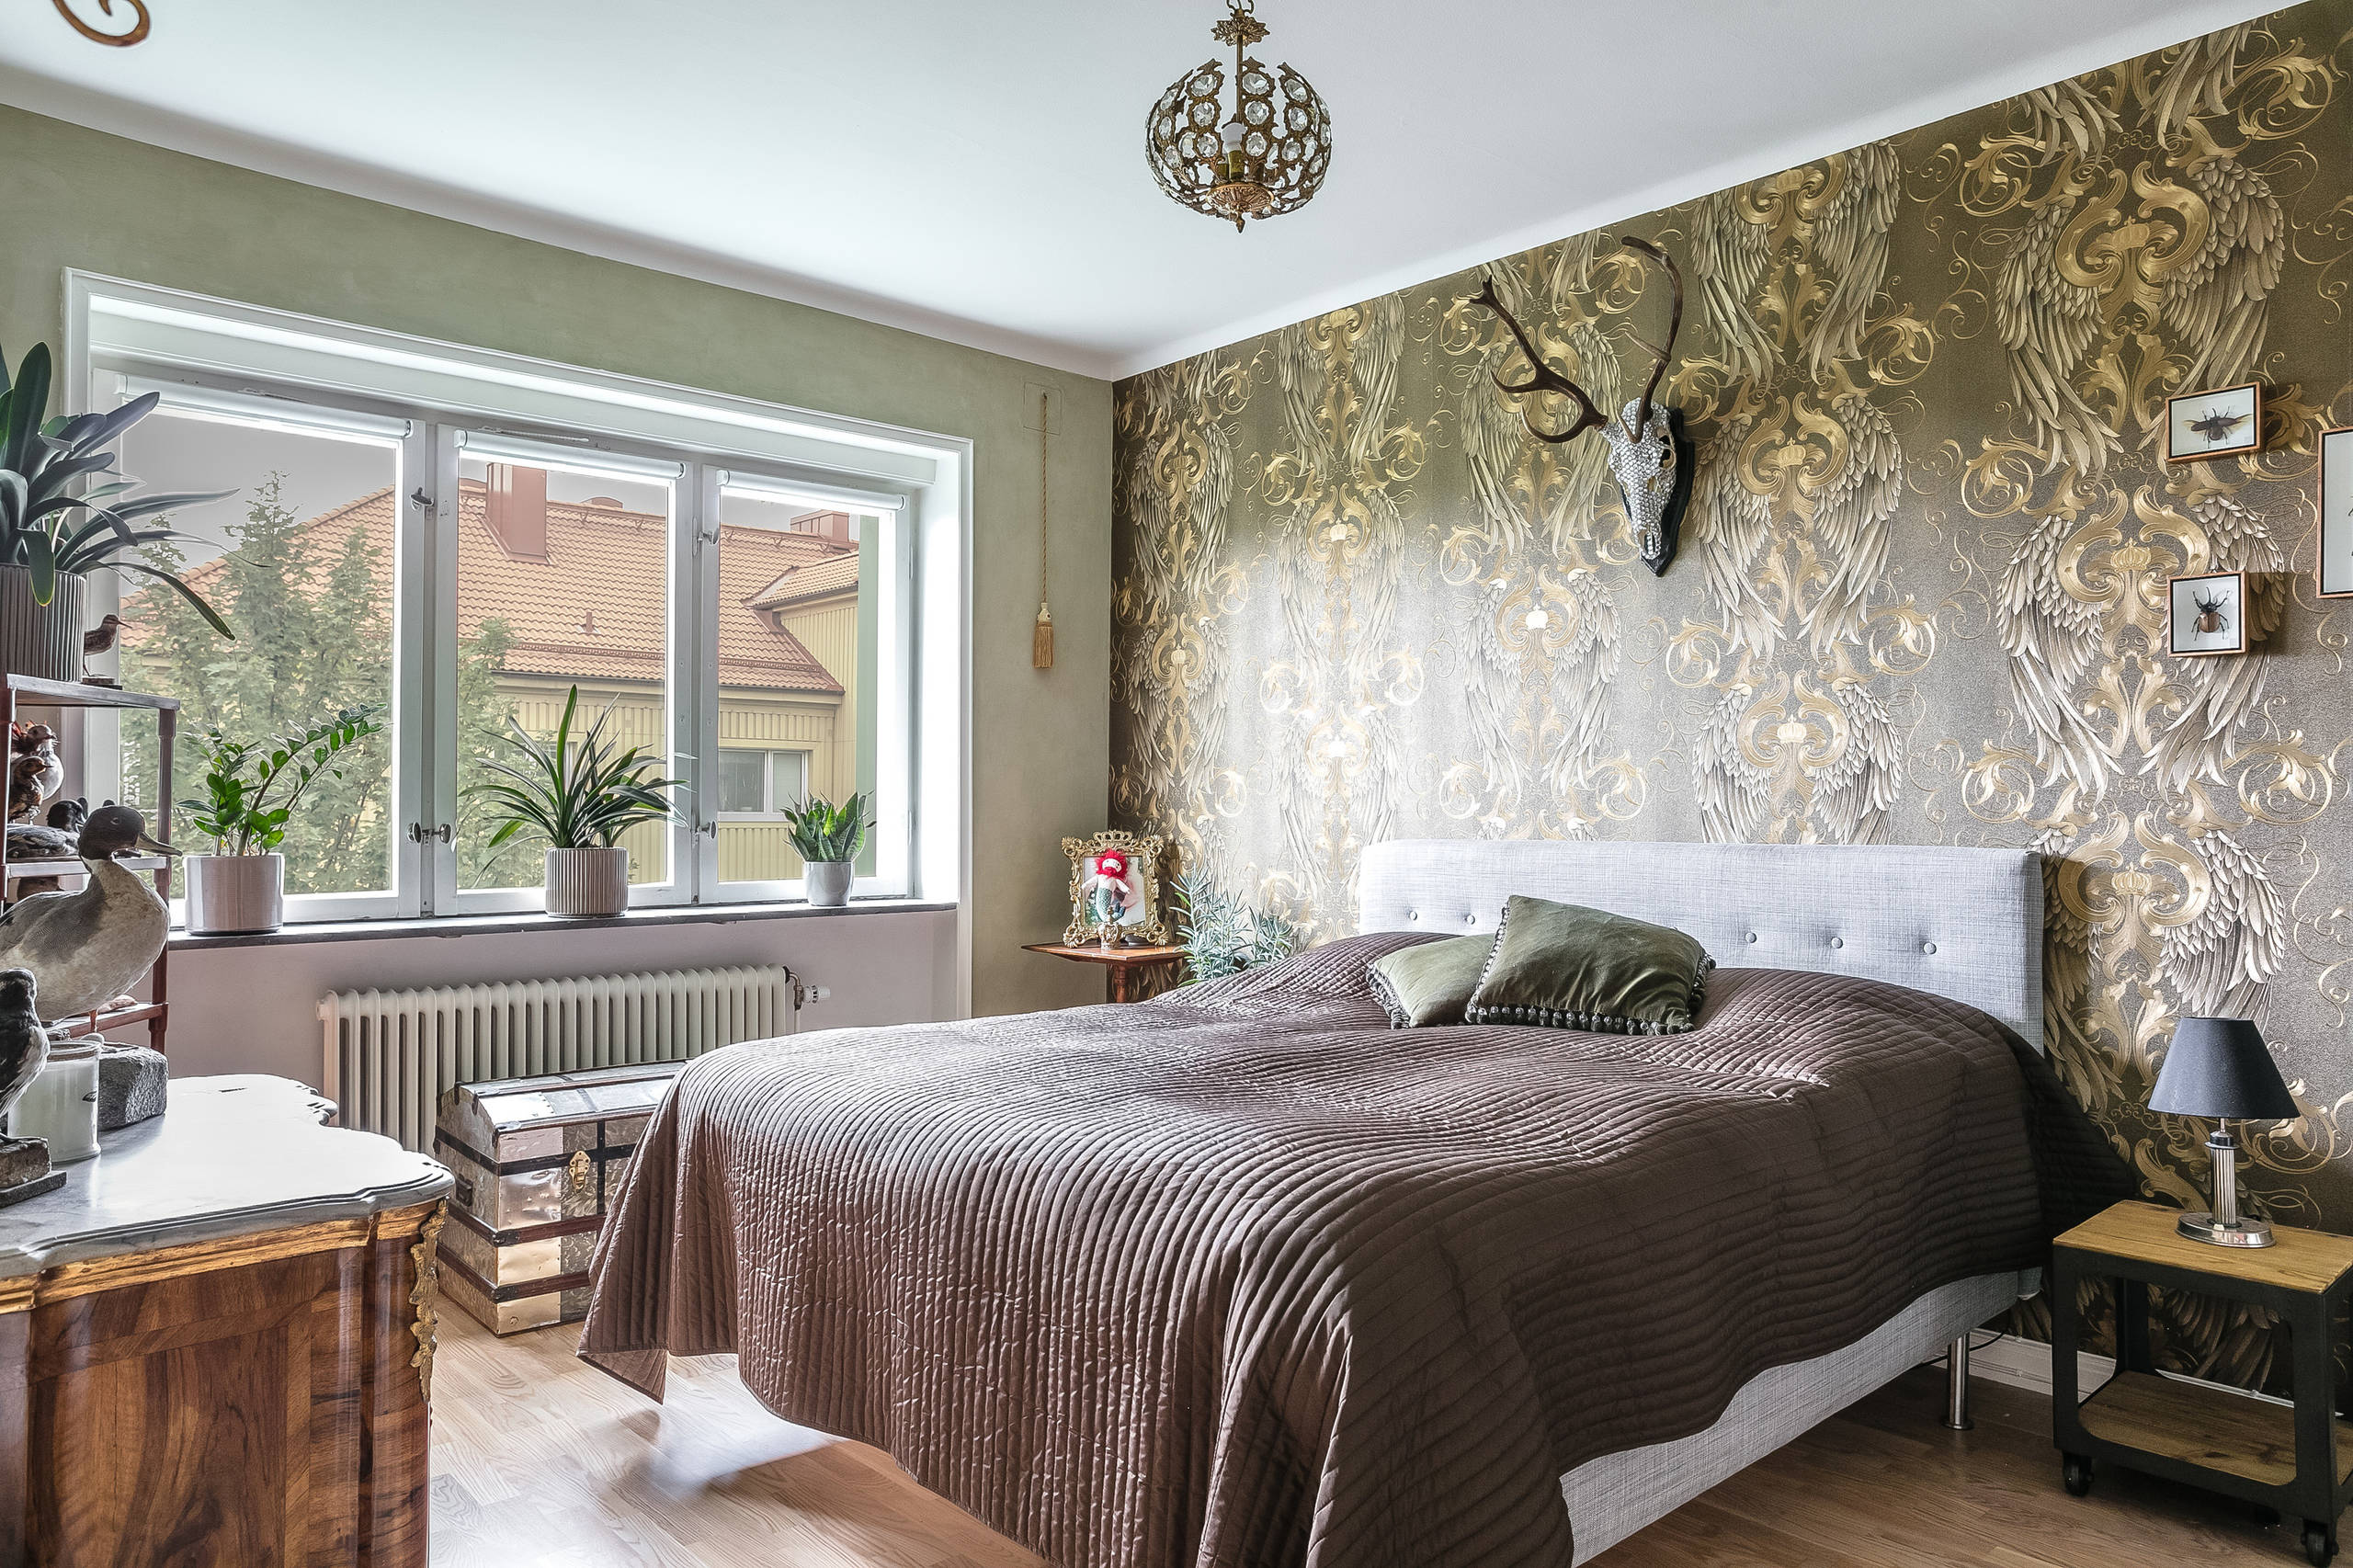 18 Soothing Eclectic Bedroom Designs With All The Comfort Youll Need